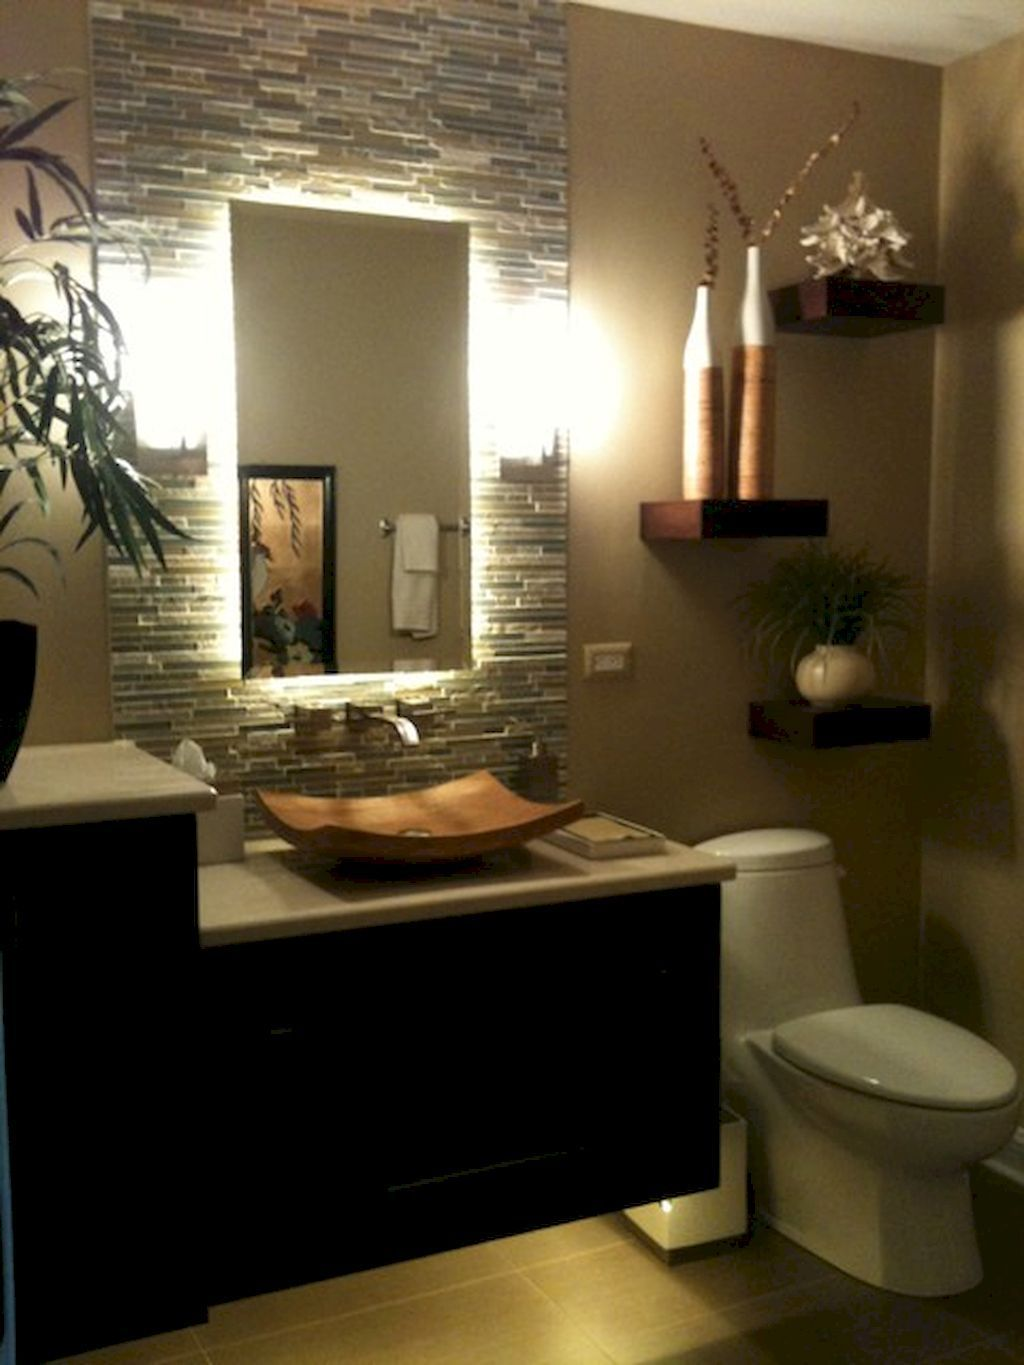 35 most efficient small powder room design ideas (24 ... on Small Space Small Bathroom Ideas Pinterest id=70511